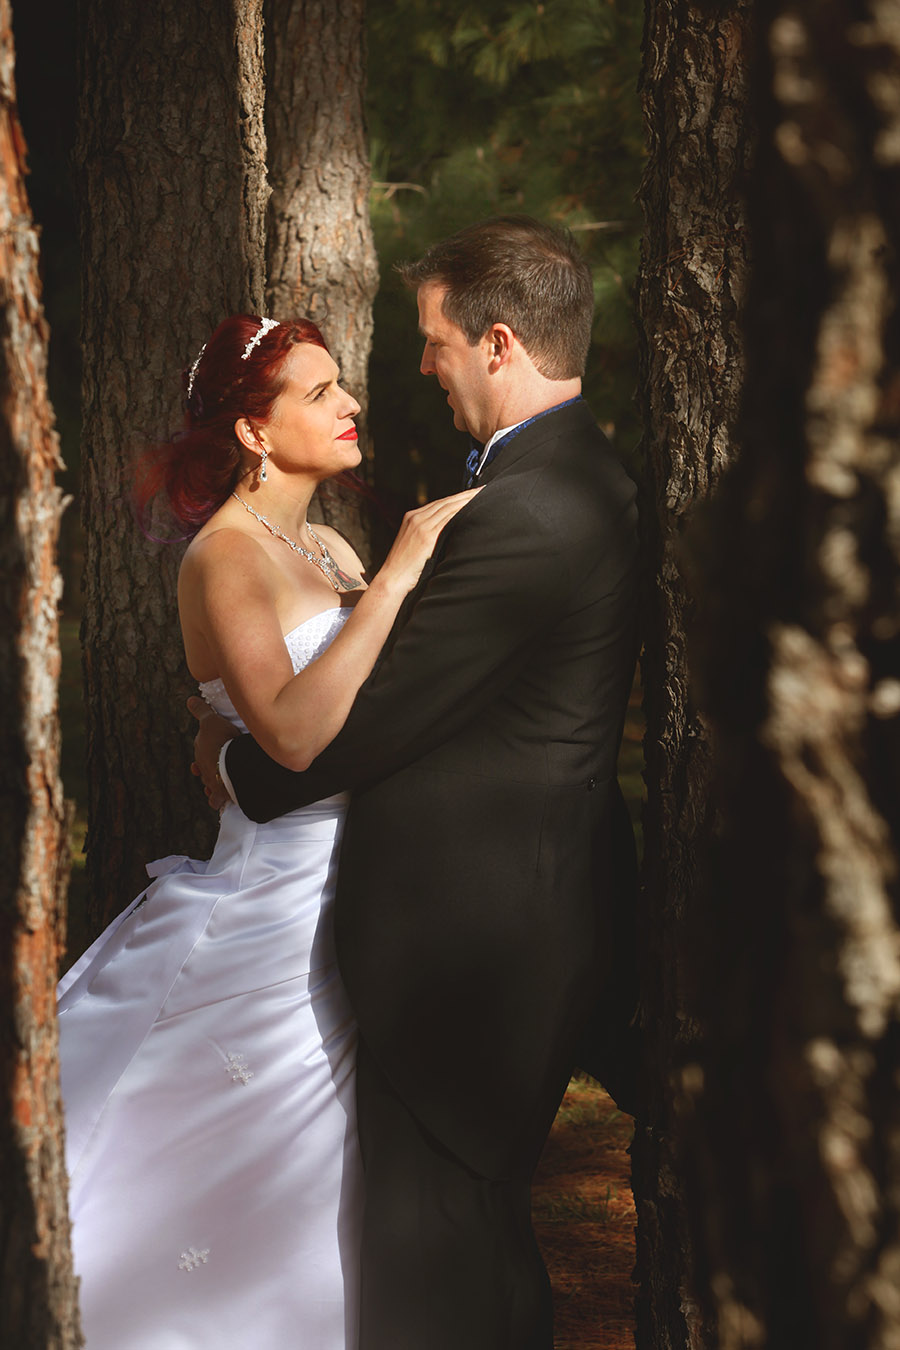 Beautiful black and white bridal gown photographer. Murwillumbah based photographer covering wedding in ACT Canberra, photographed in the woods. Bride in the woods. Gazing into eyes of groom